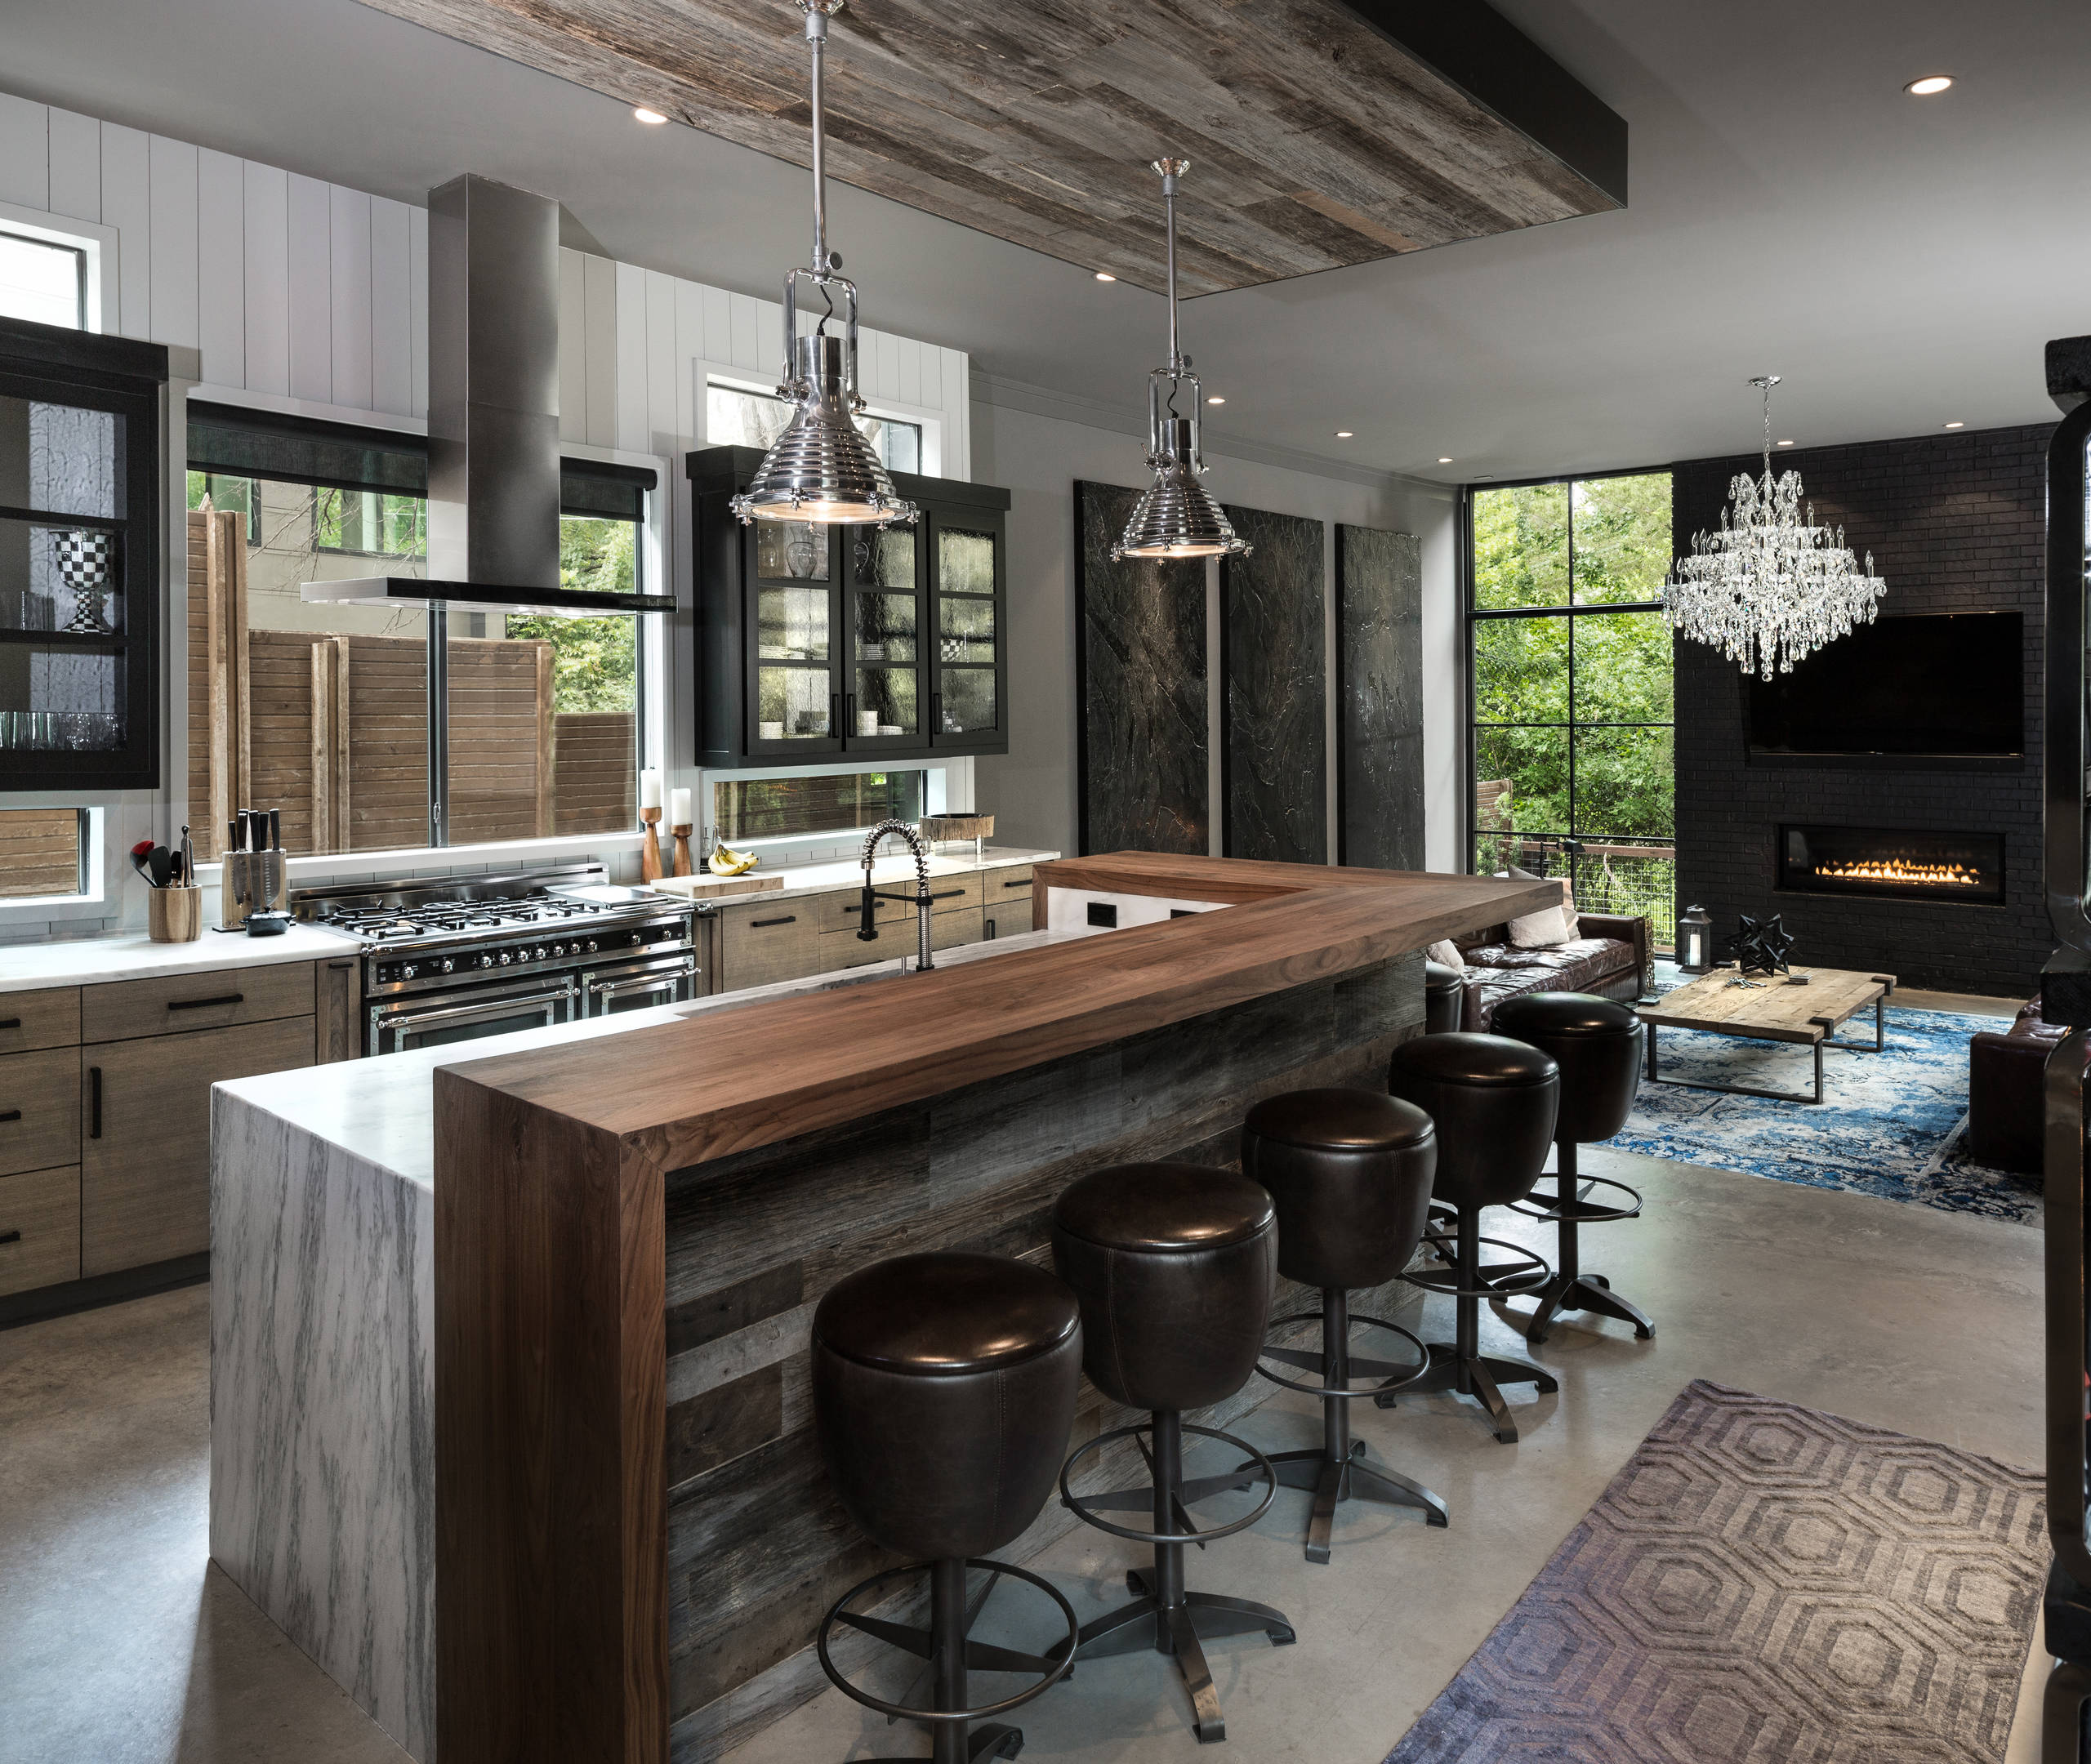 75 Beautiful Industrial Kitchen Pictures Ideas January 2021 Houzz